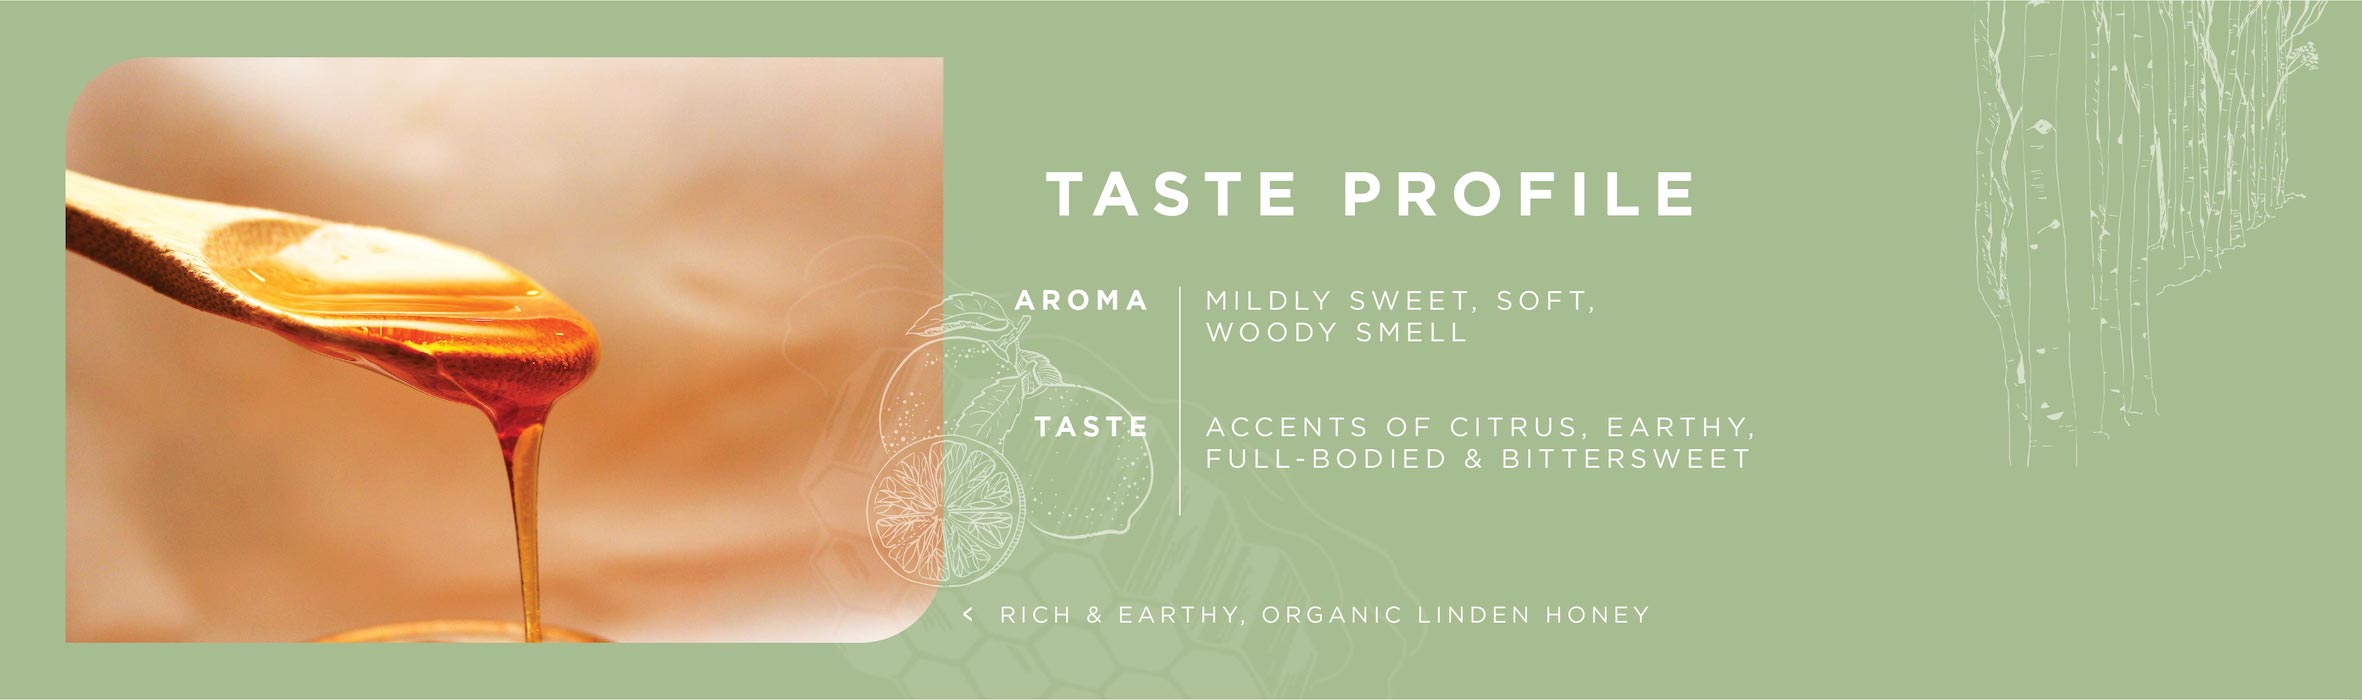 taste profile: linden honey aroma - mildly sweet, soft, woody smell. Linden honey taste - accents of citrus, earthy, full-bodied and bittersweet.